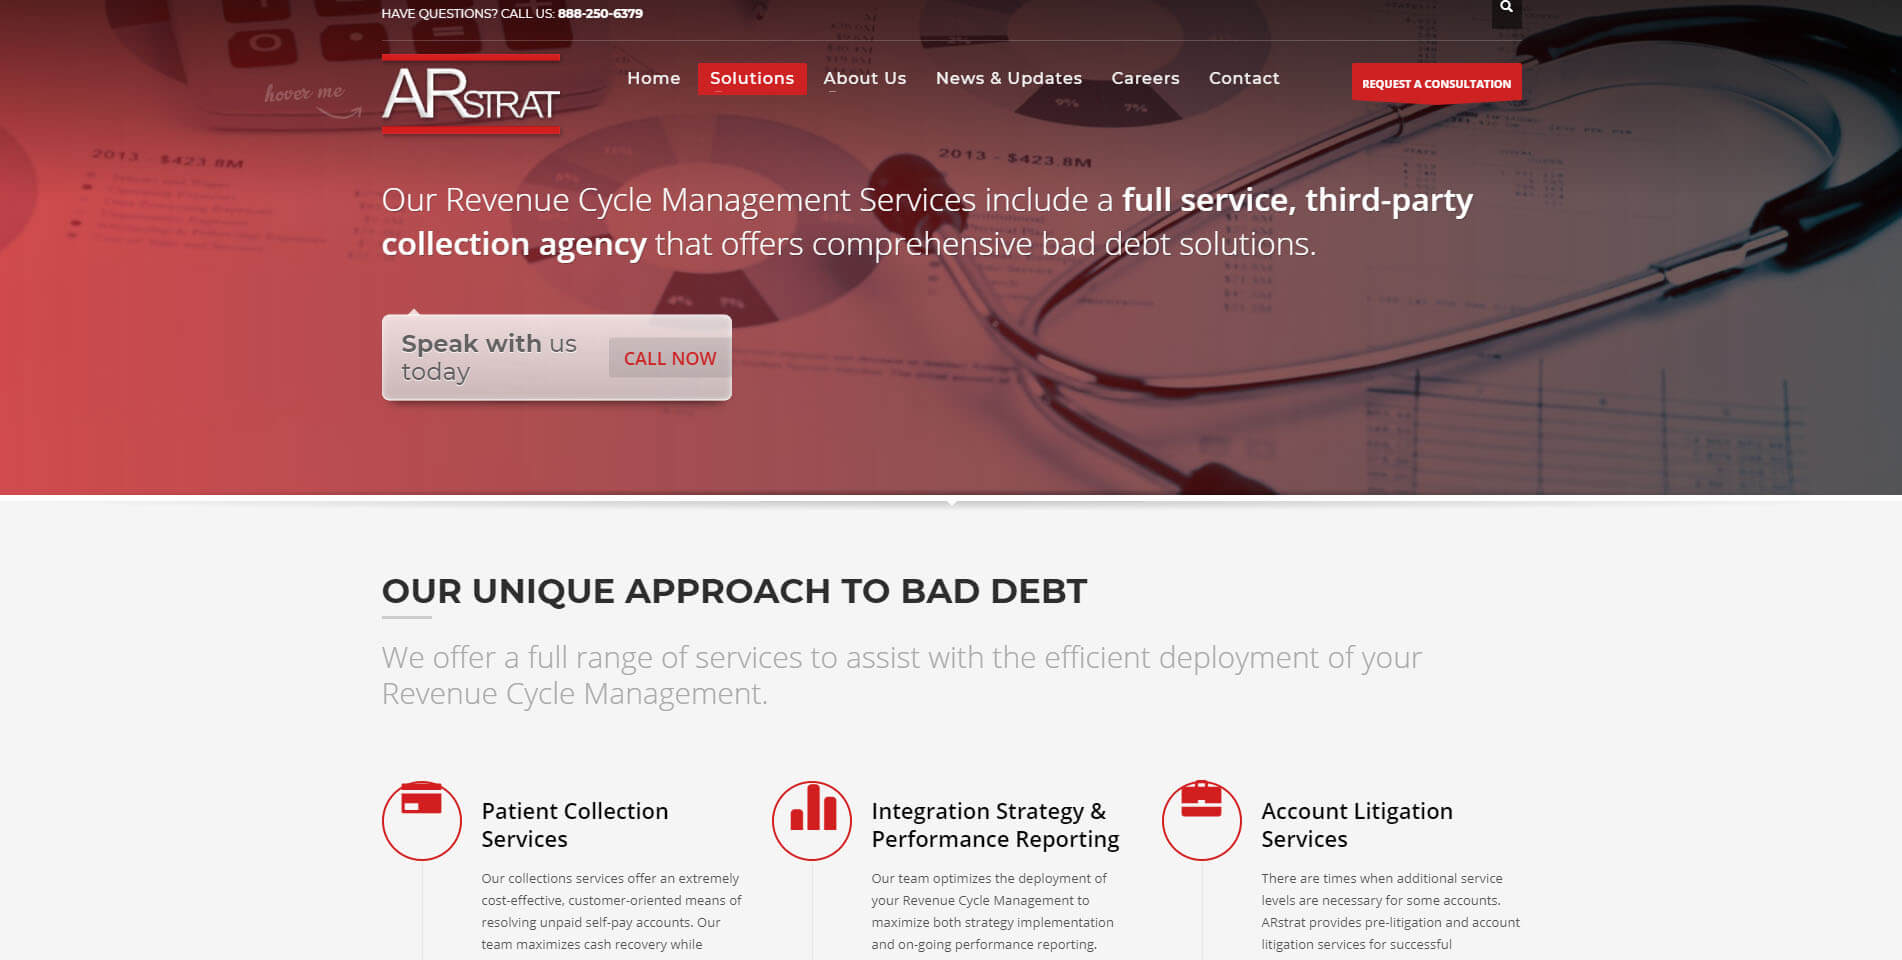 An image of the services page of ARstrat, website created by Not Fade Away Marketing